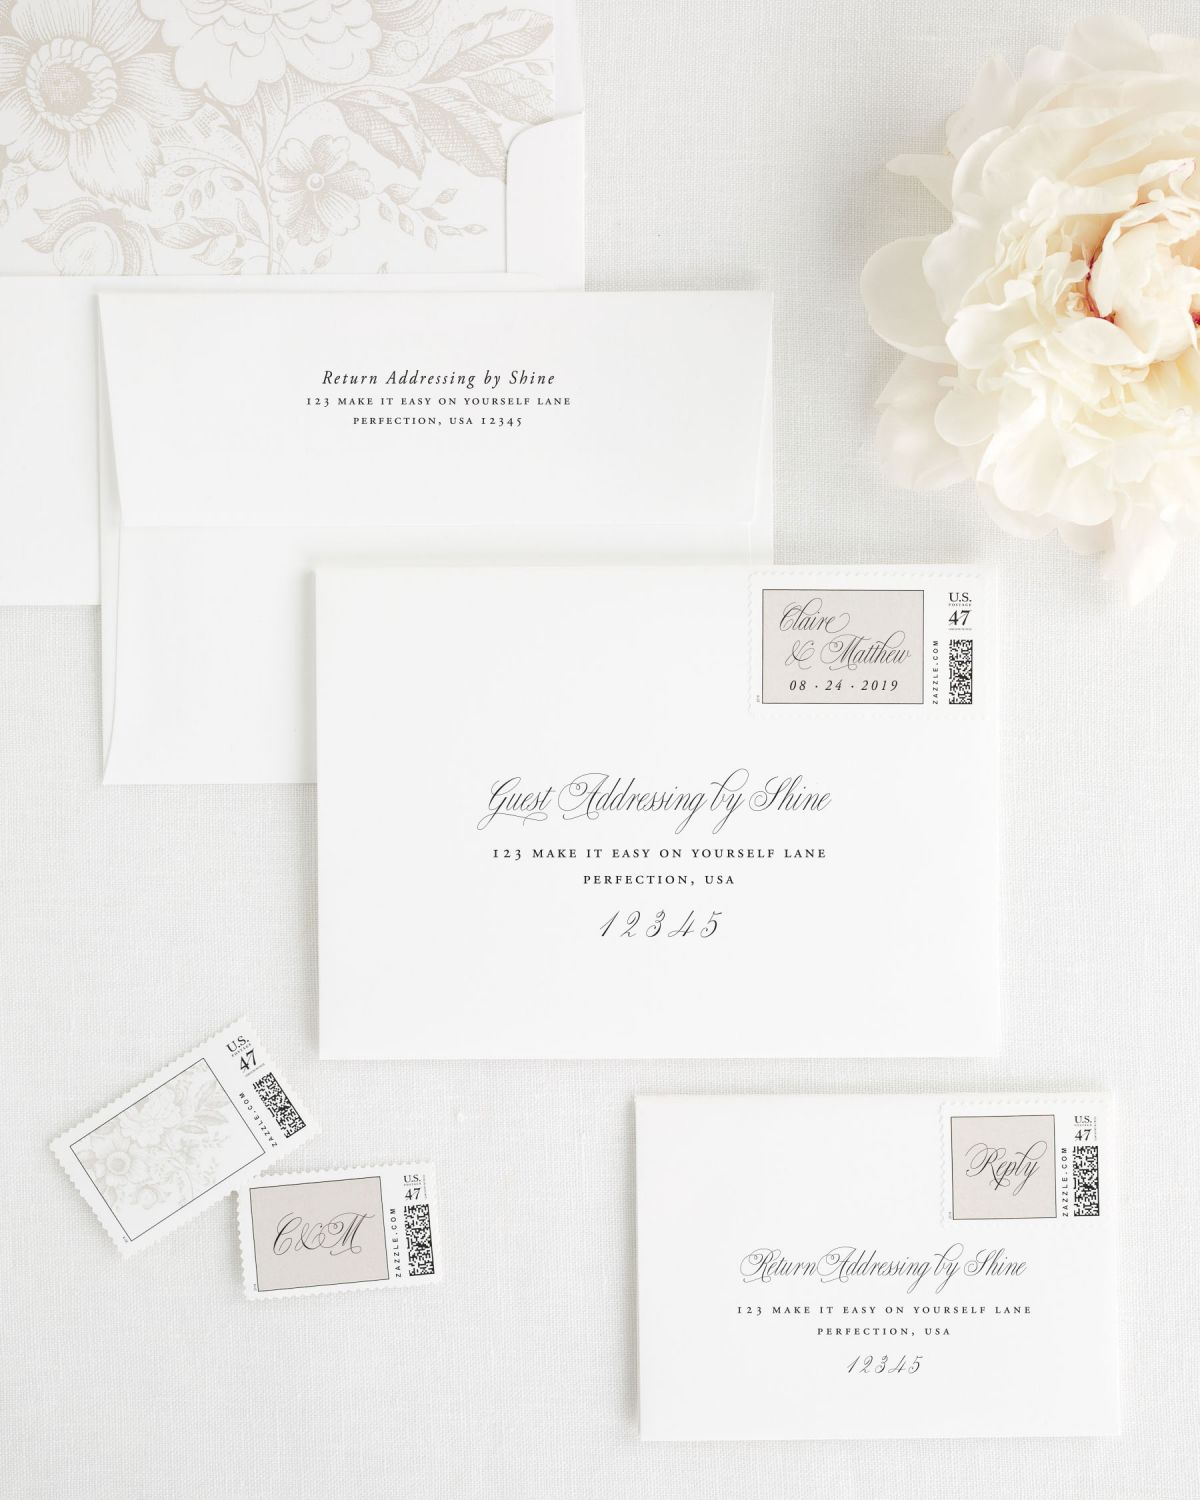 Wedding Invitation Envelopes with Guest Addressing and Personalized Stamps